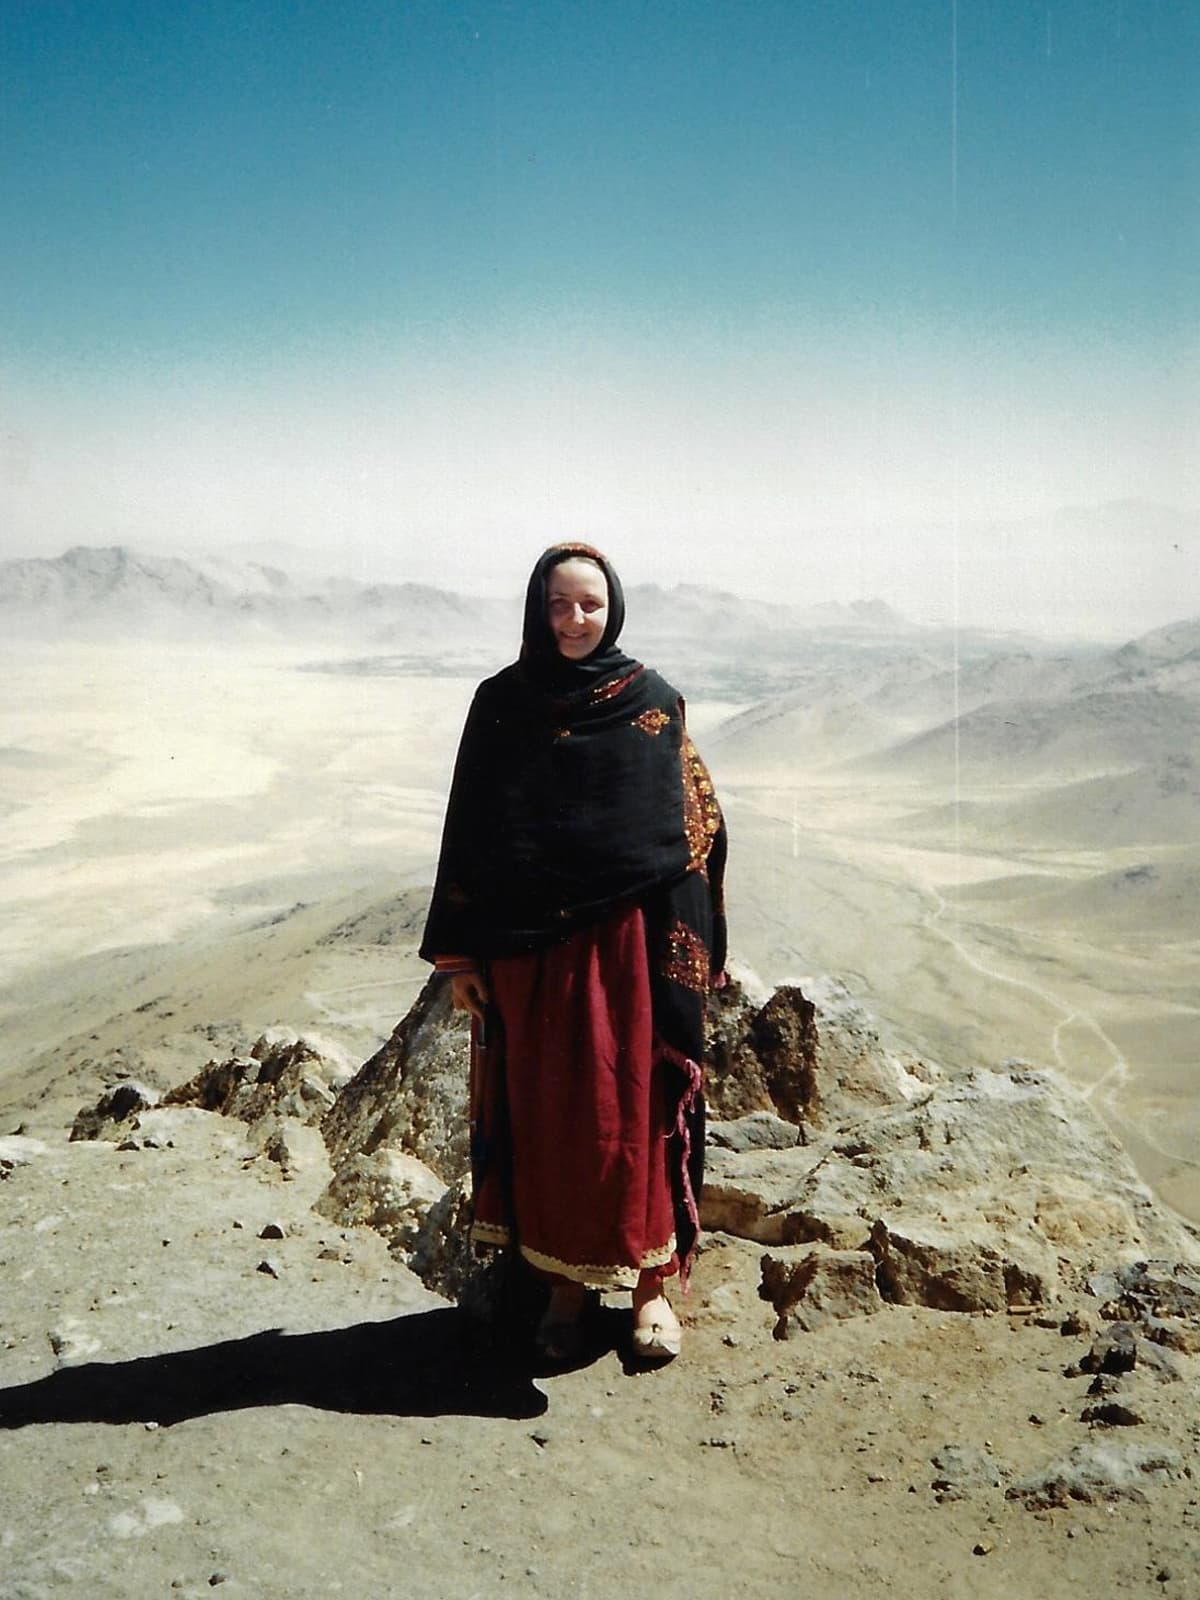 Mariam Abou Zahab in southern Afghanistan during the mid-1980s